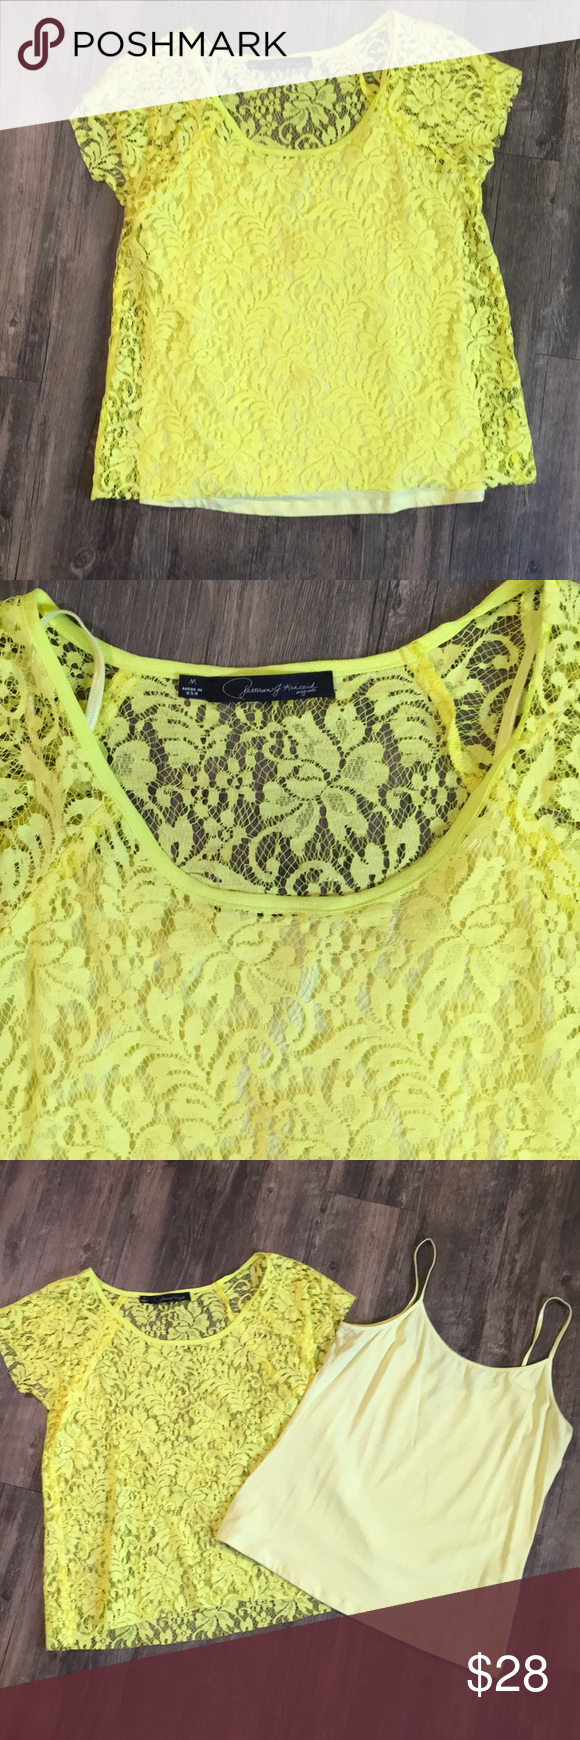 Yellow lace top with removable camisole conditioning customer